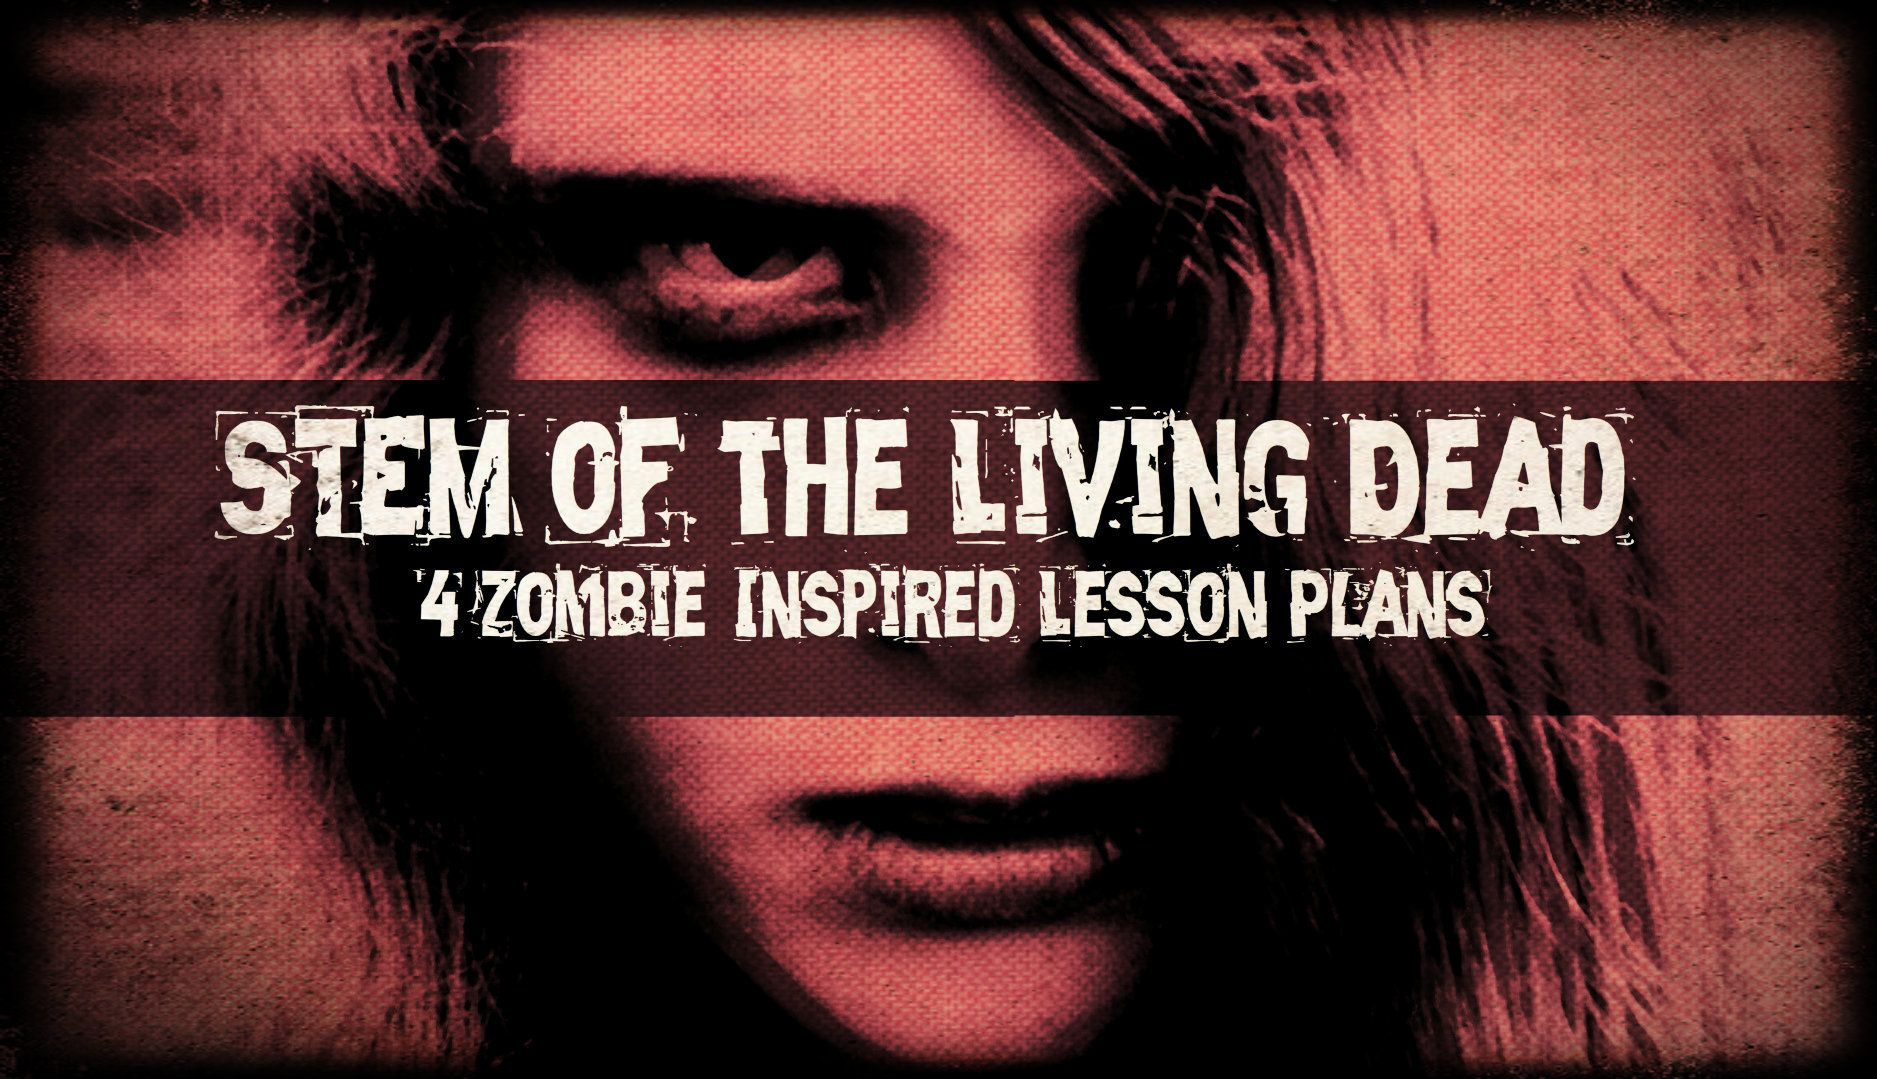 STEM of the Living Dead: 4 Zombie-Inspired Lesson Plans